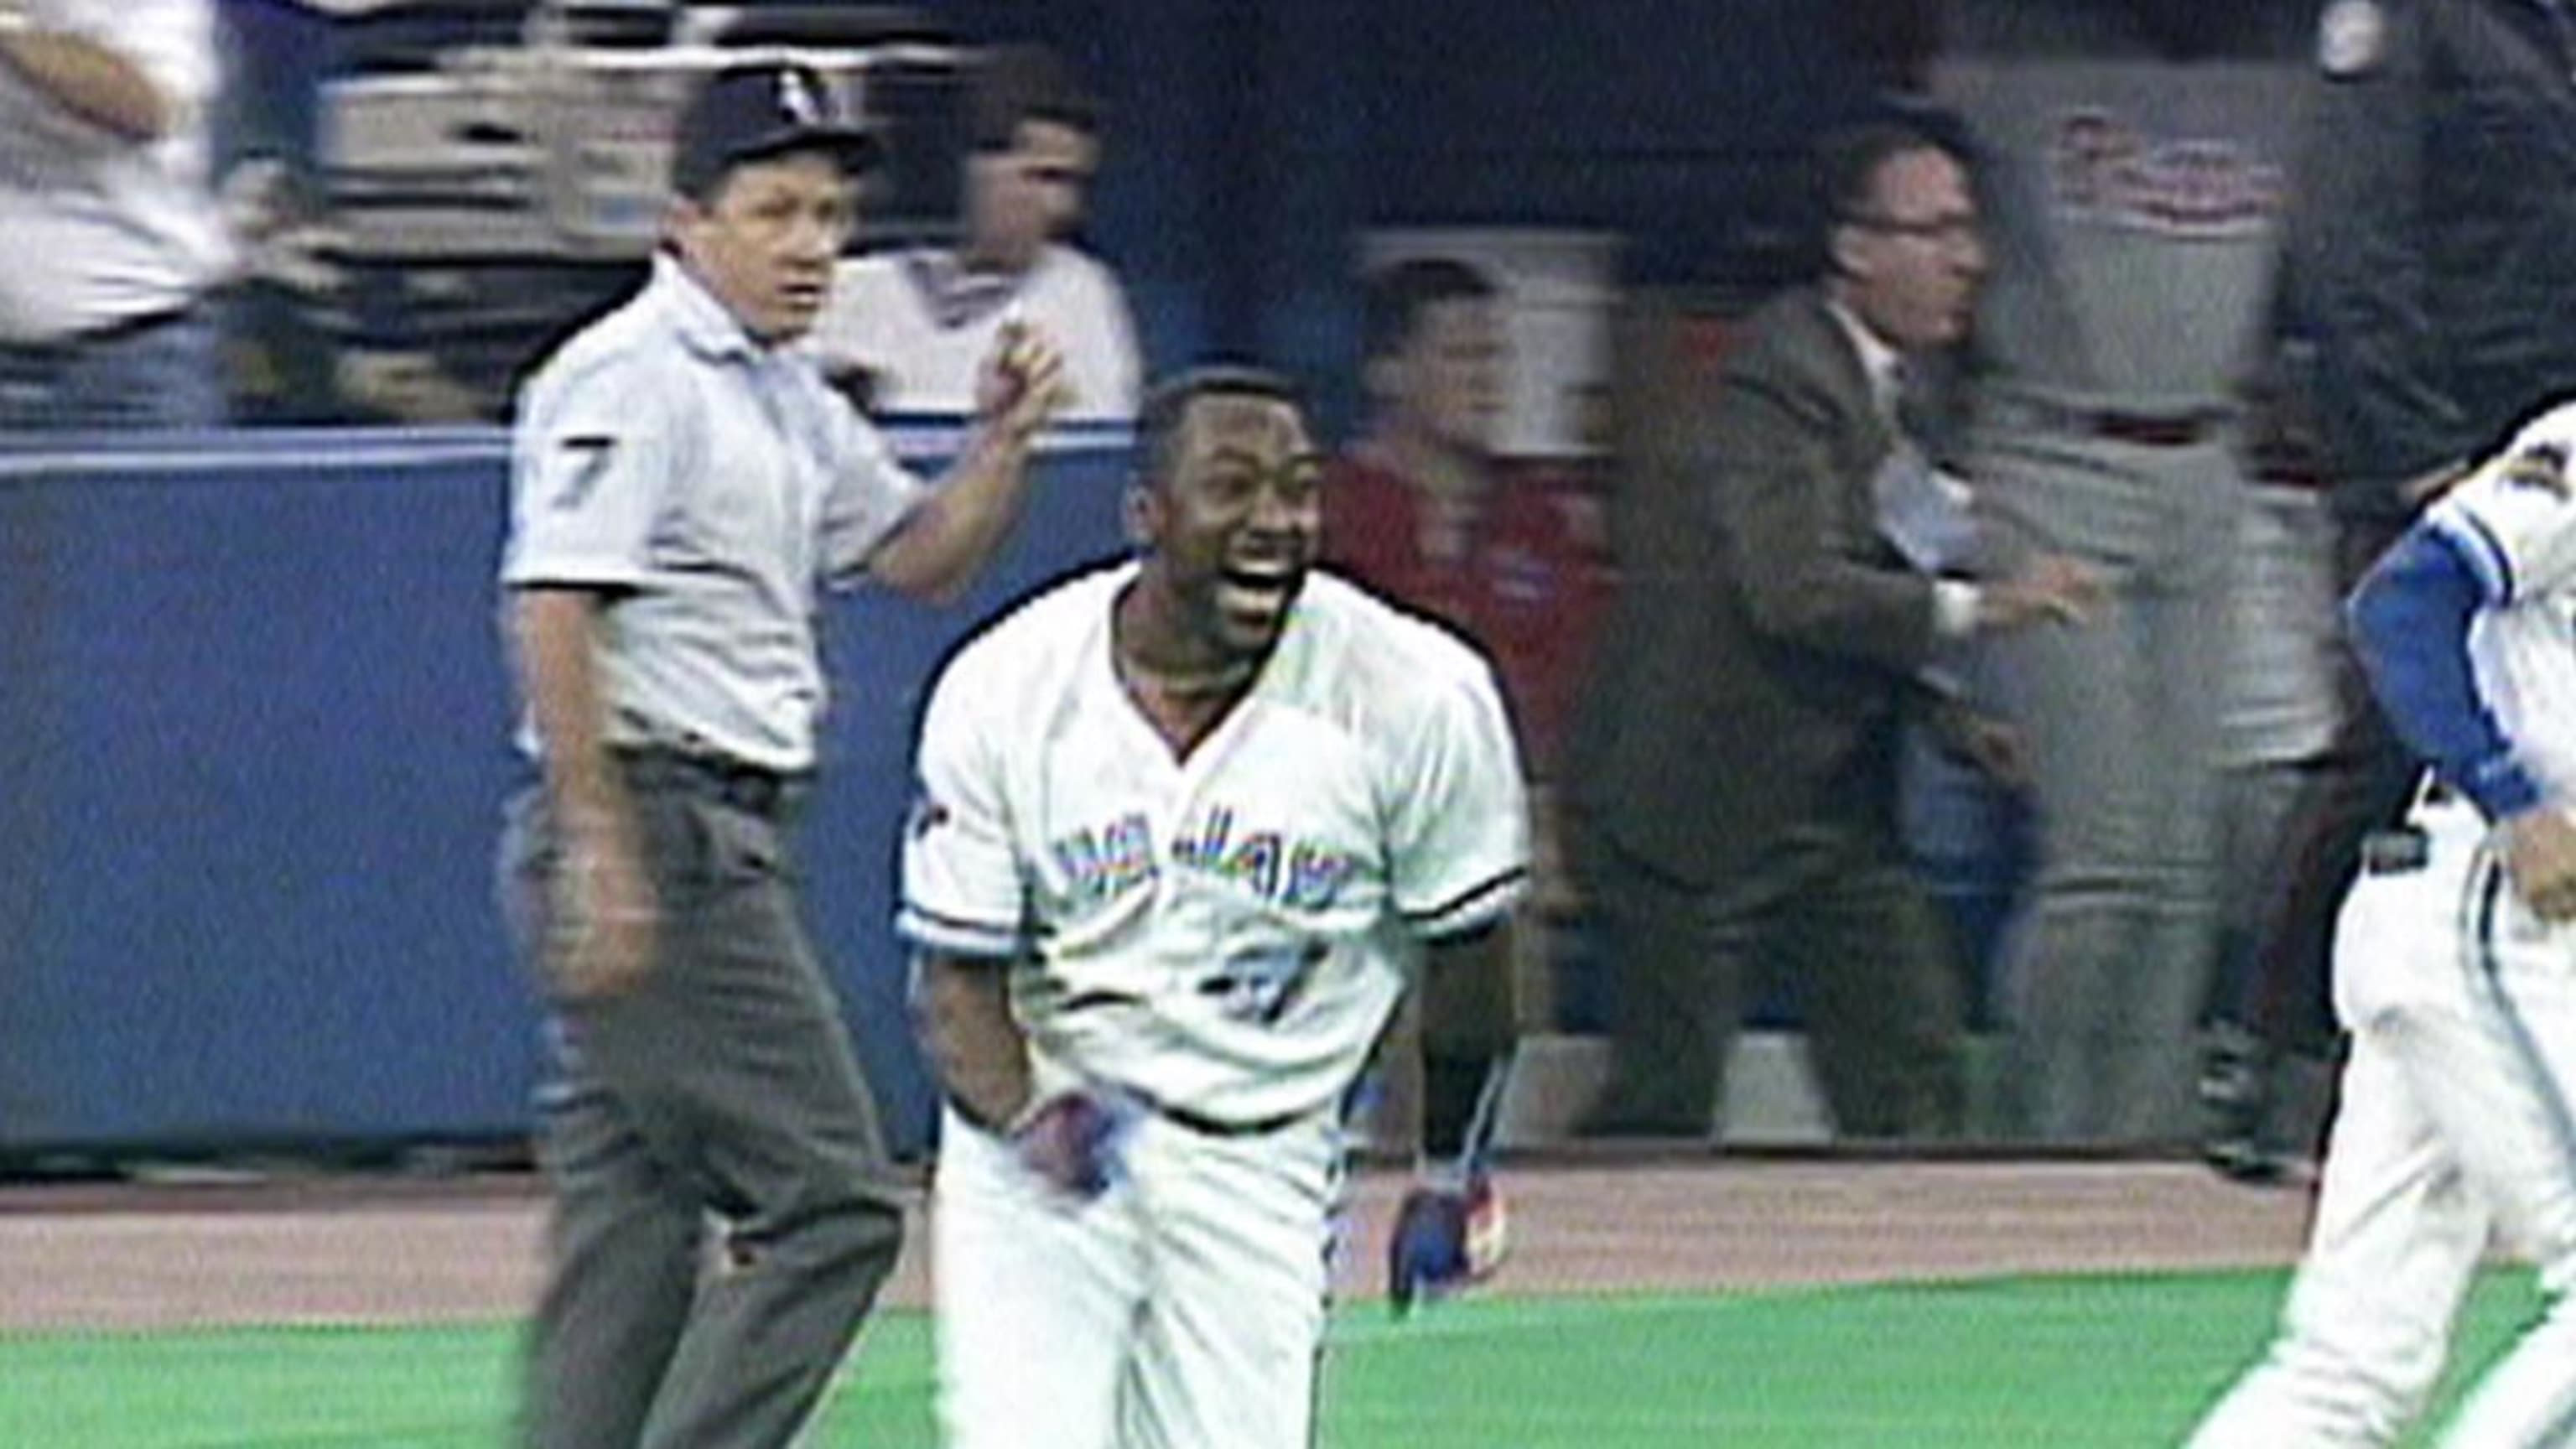 Joe Carter wins the '93 Series